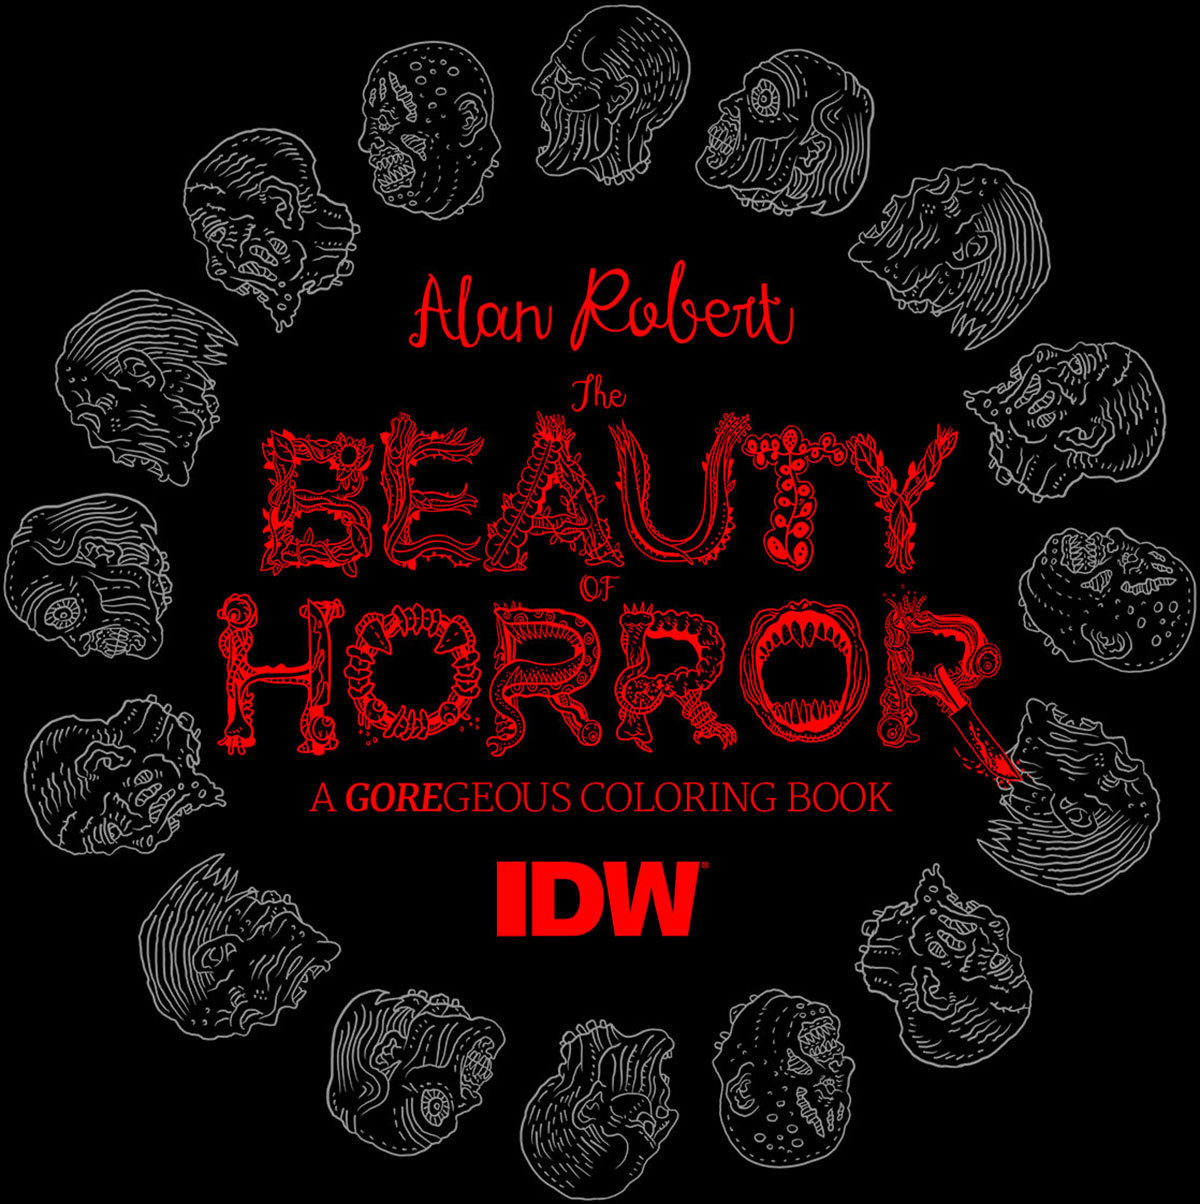 the beauty of horror 2 ghoulianas creepatorium another goregeous coloring book by alan robert